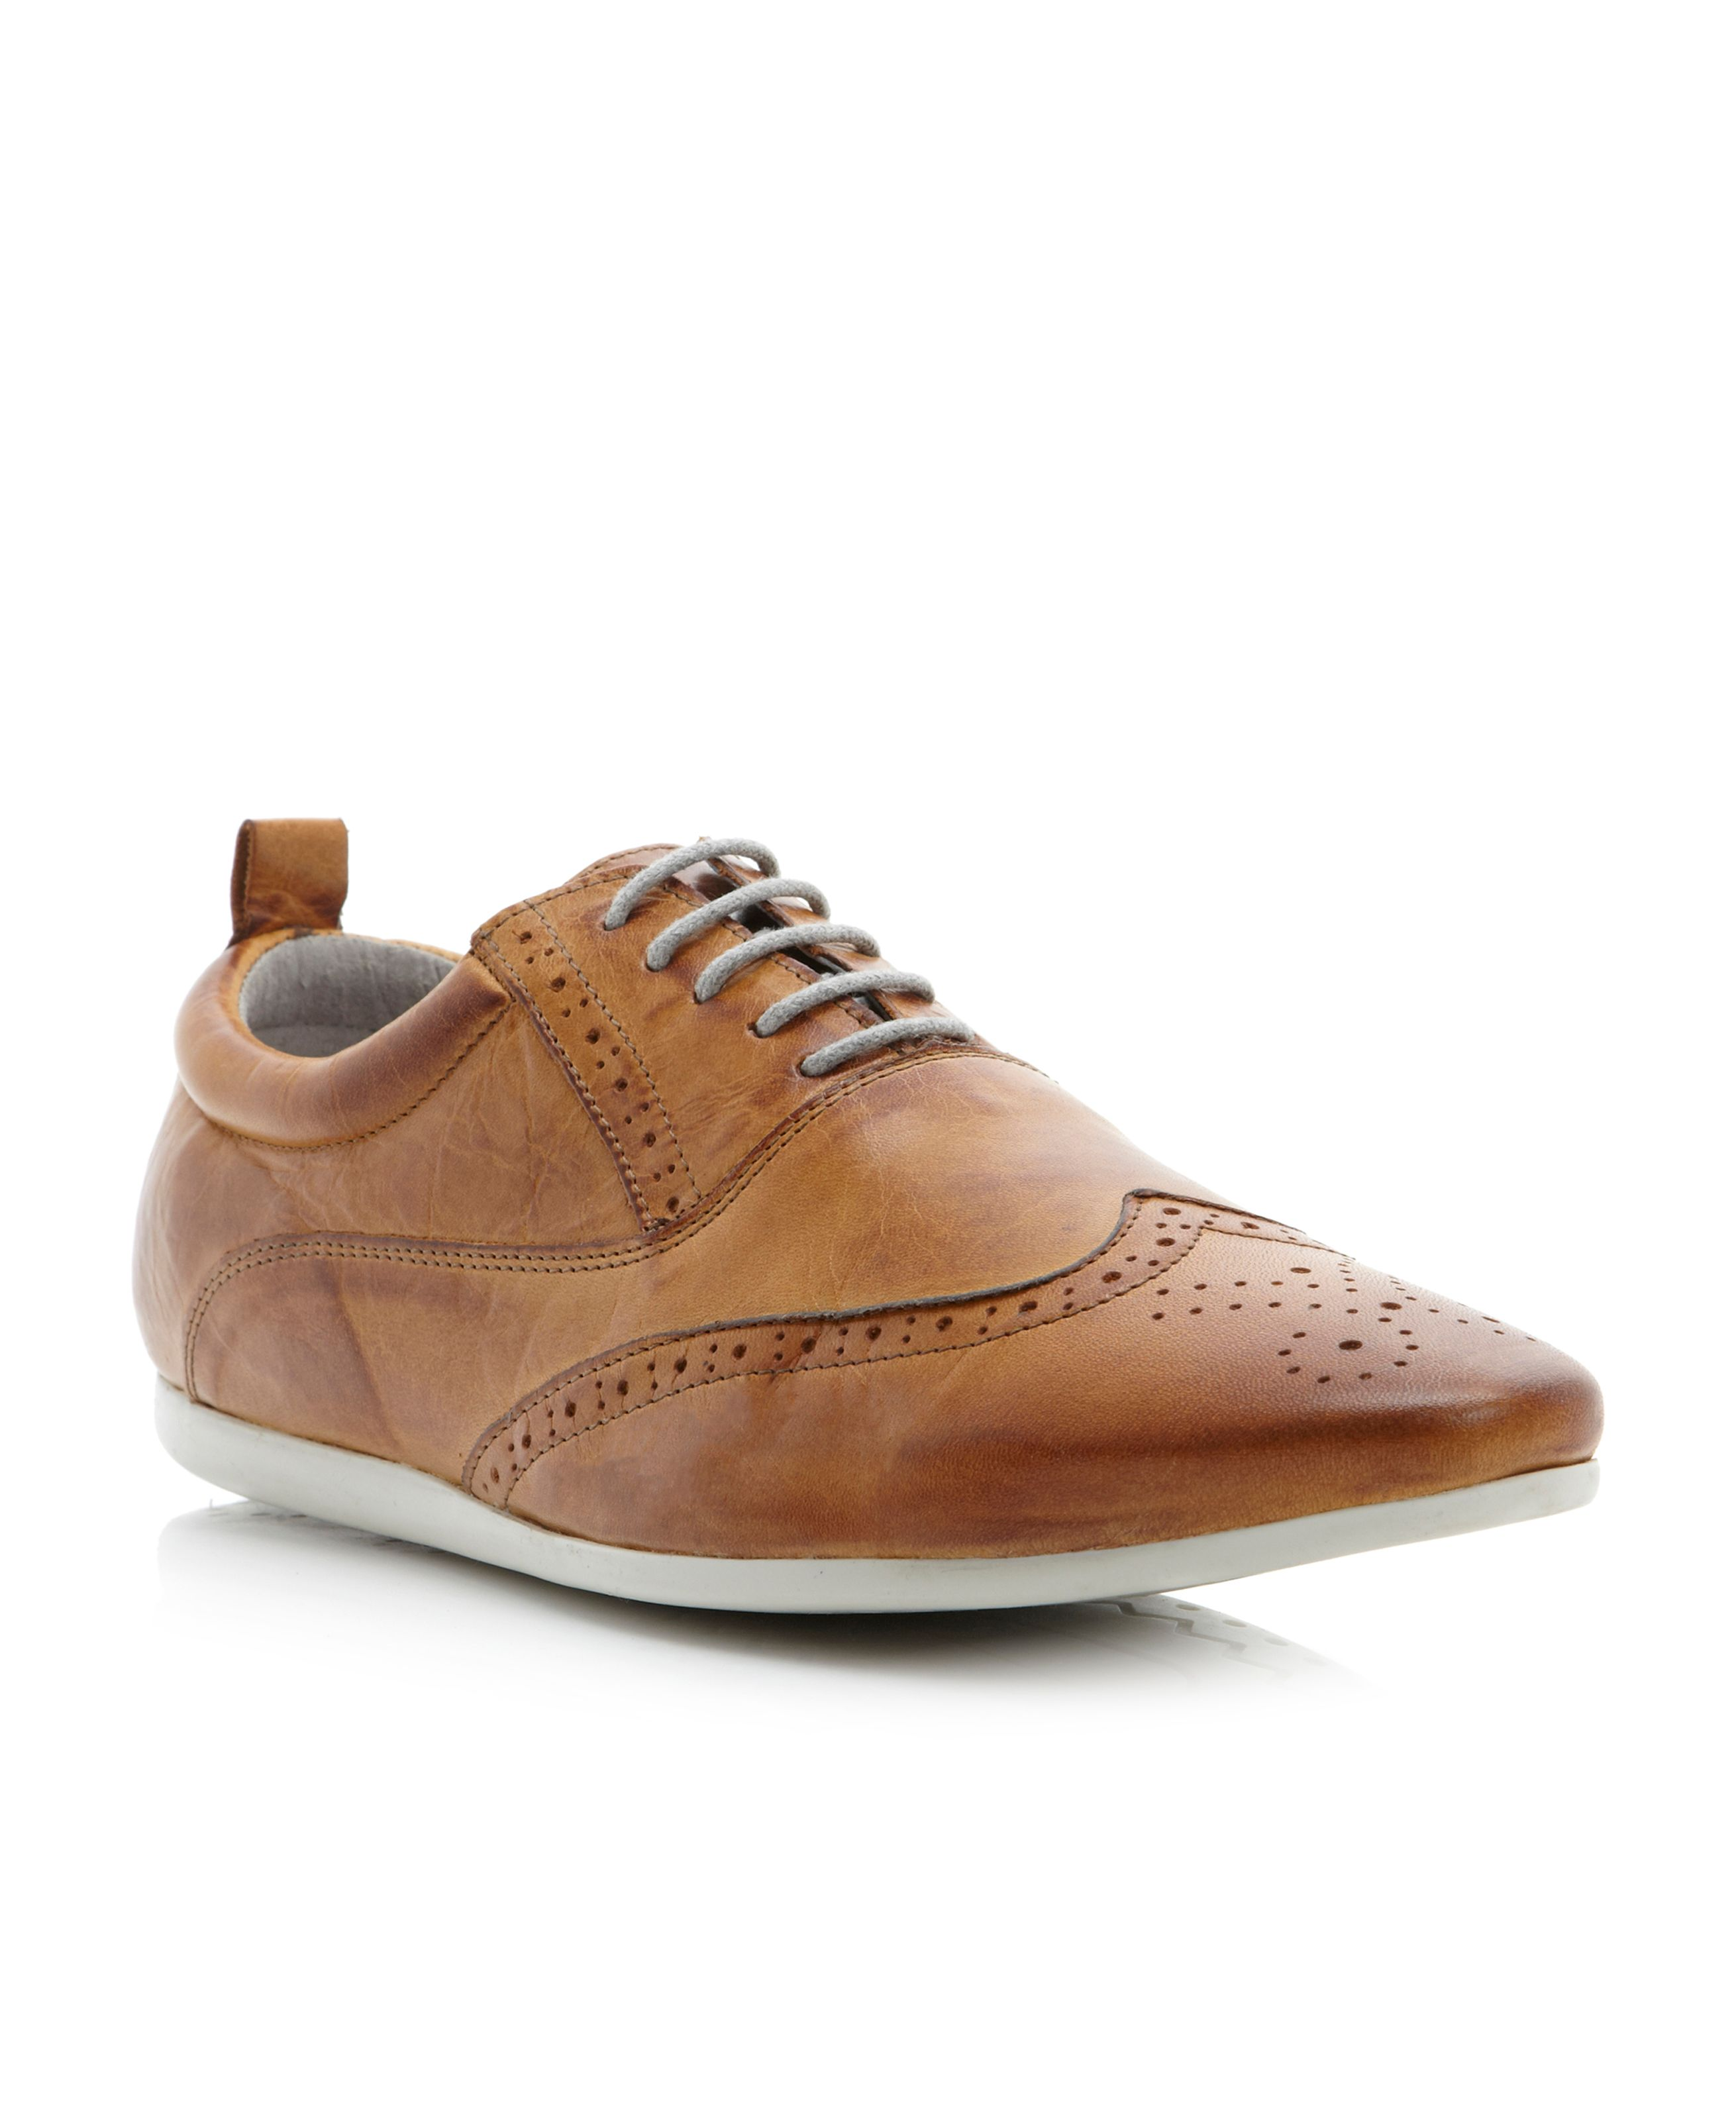 Curiously wingtip casual laceup brogues